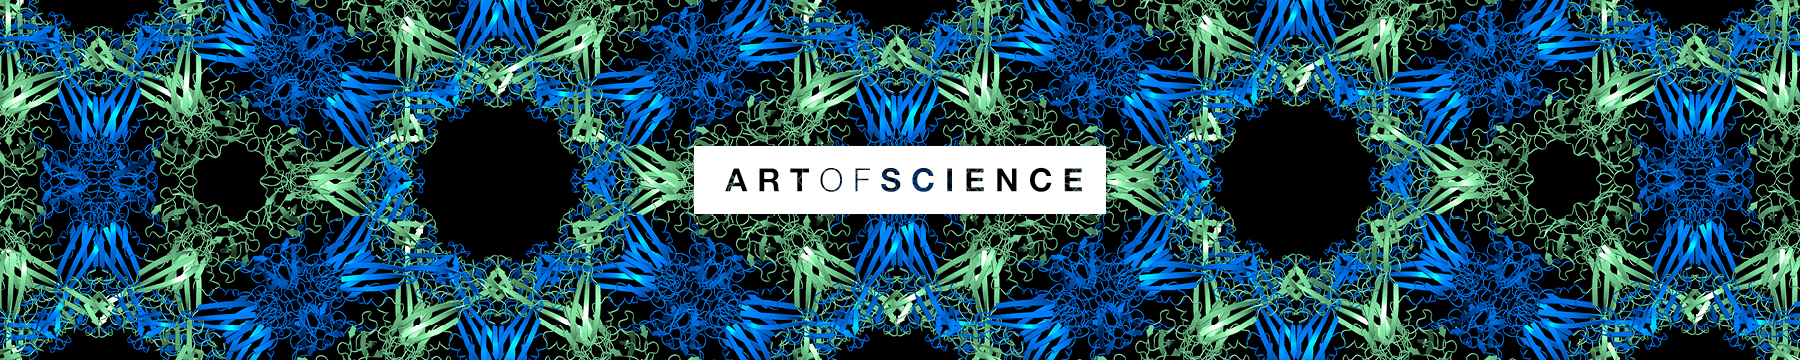 Art of Science 2018 event promotion